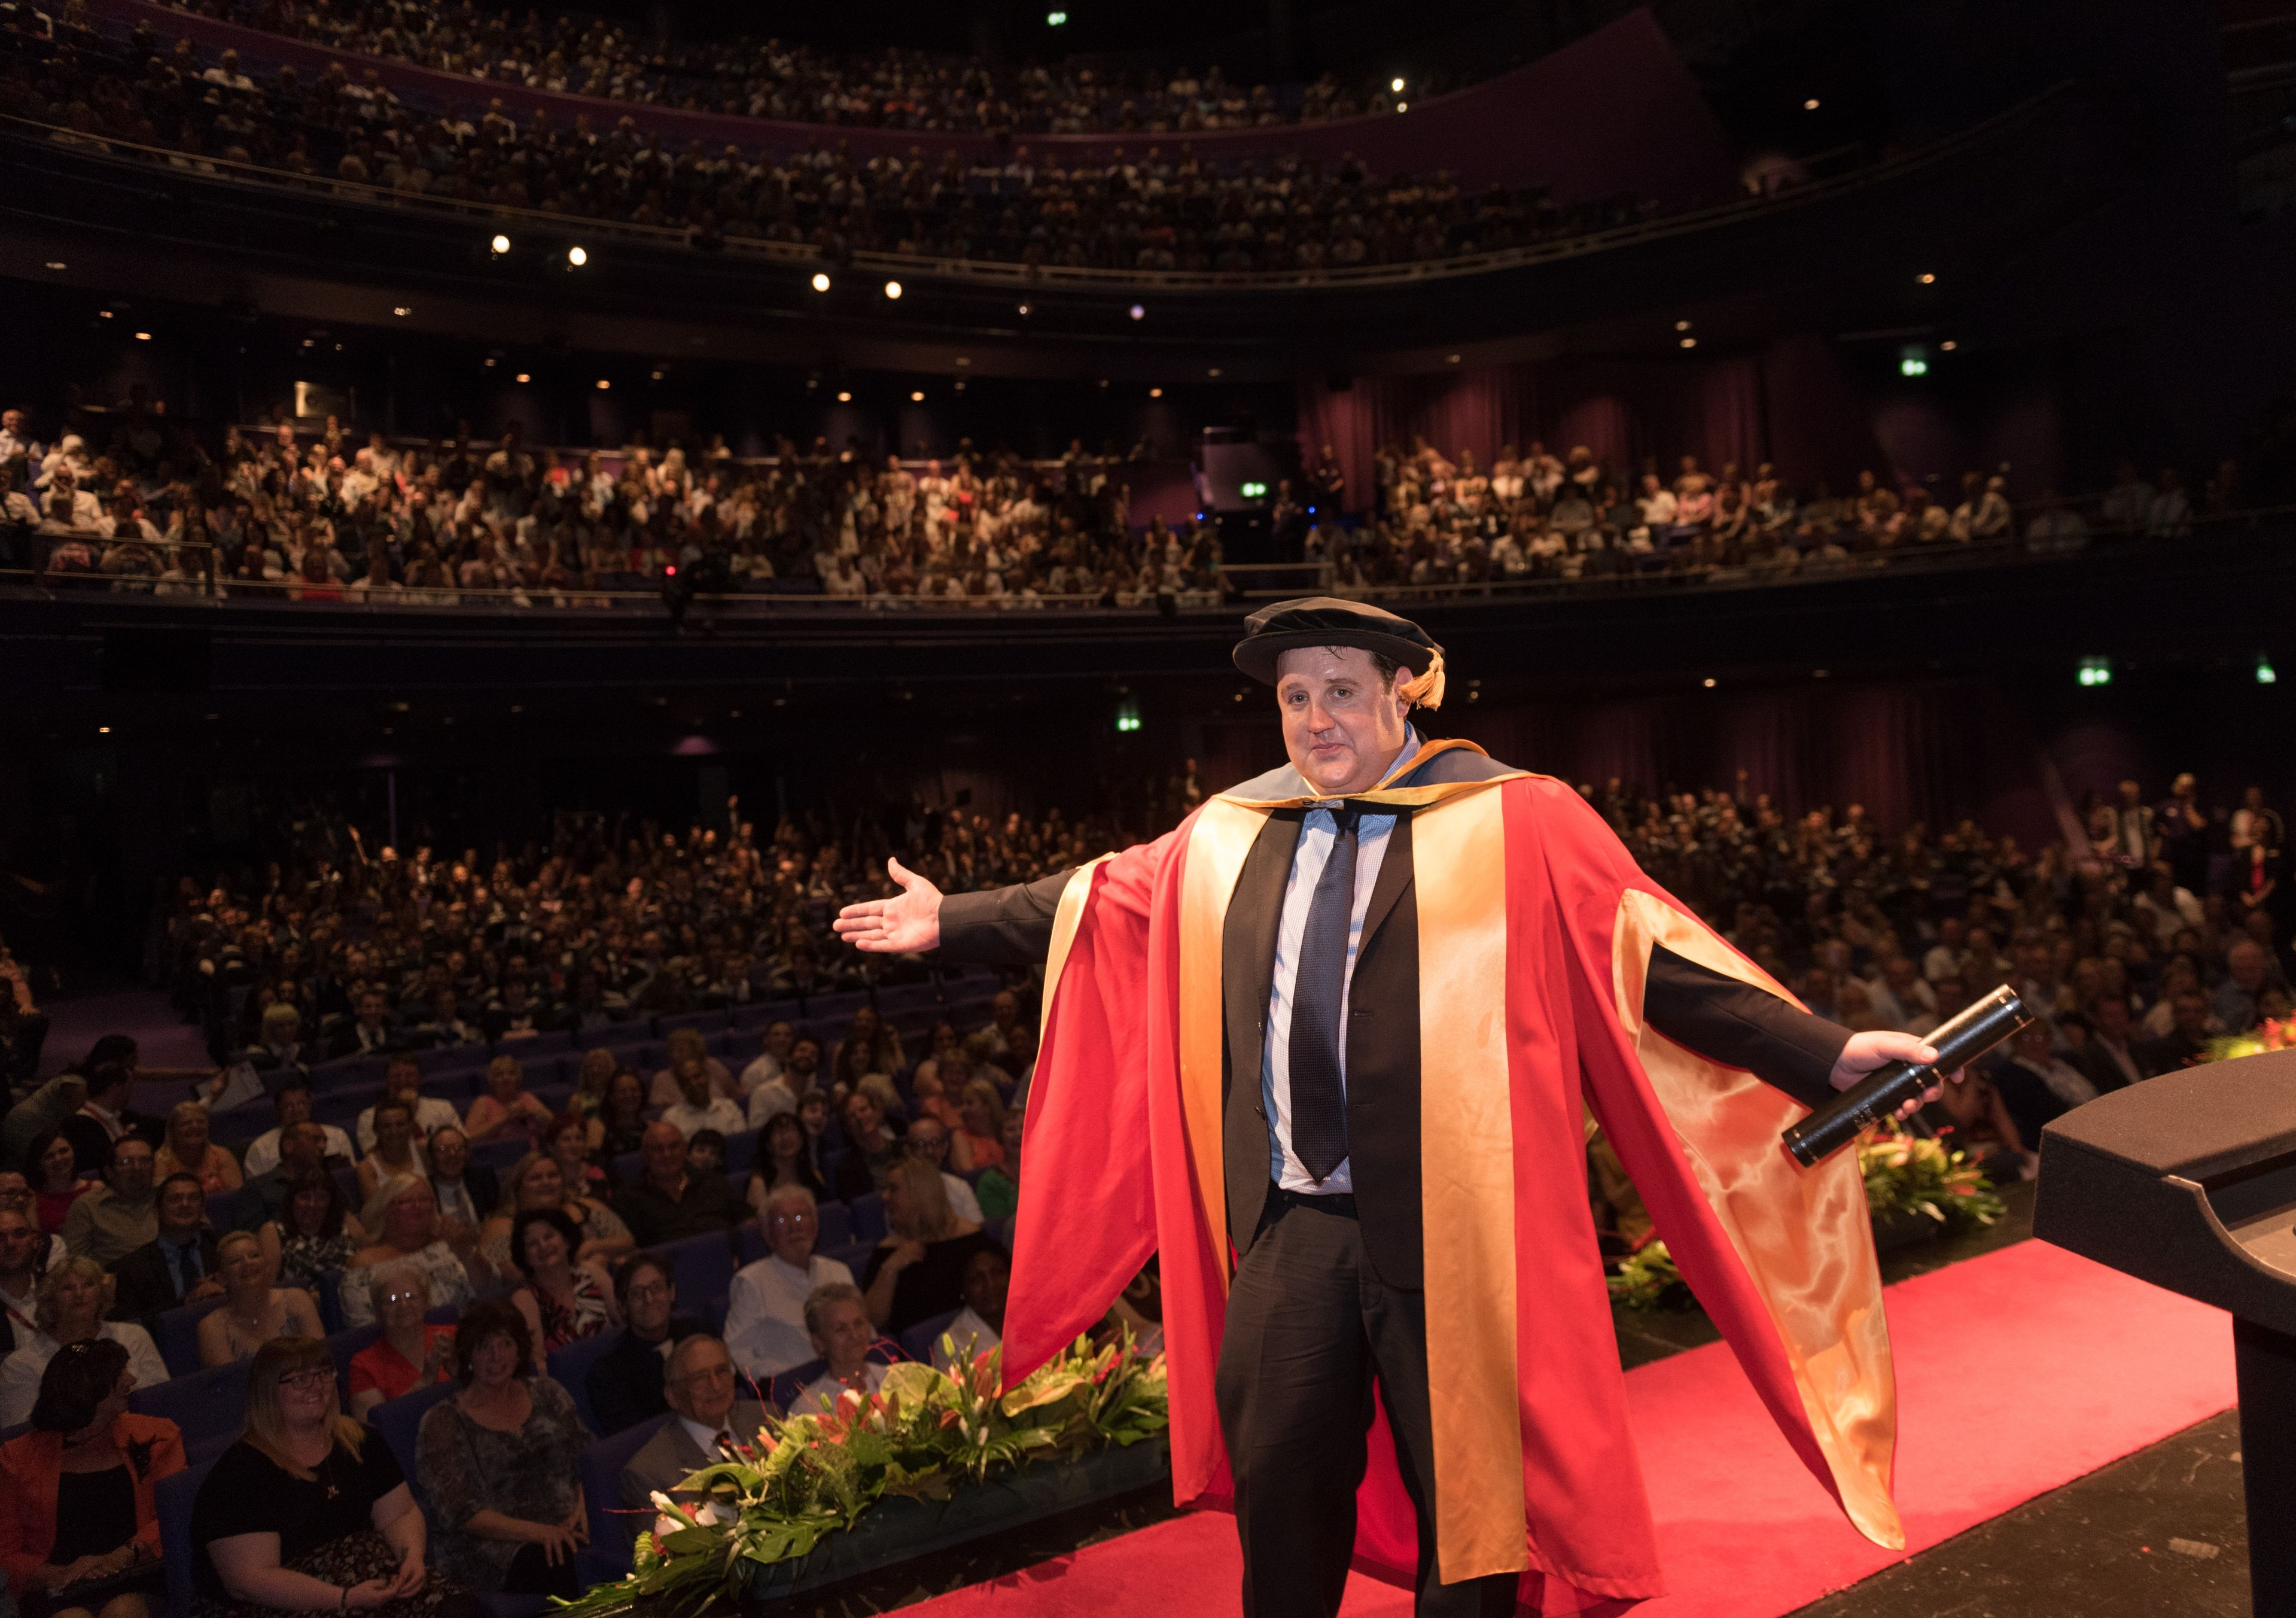 Peter Kay honorary doctorate from Salford Universi